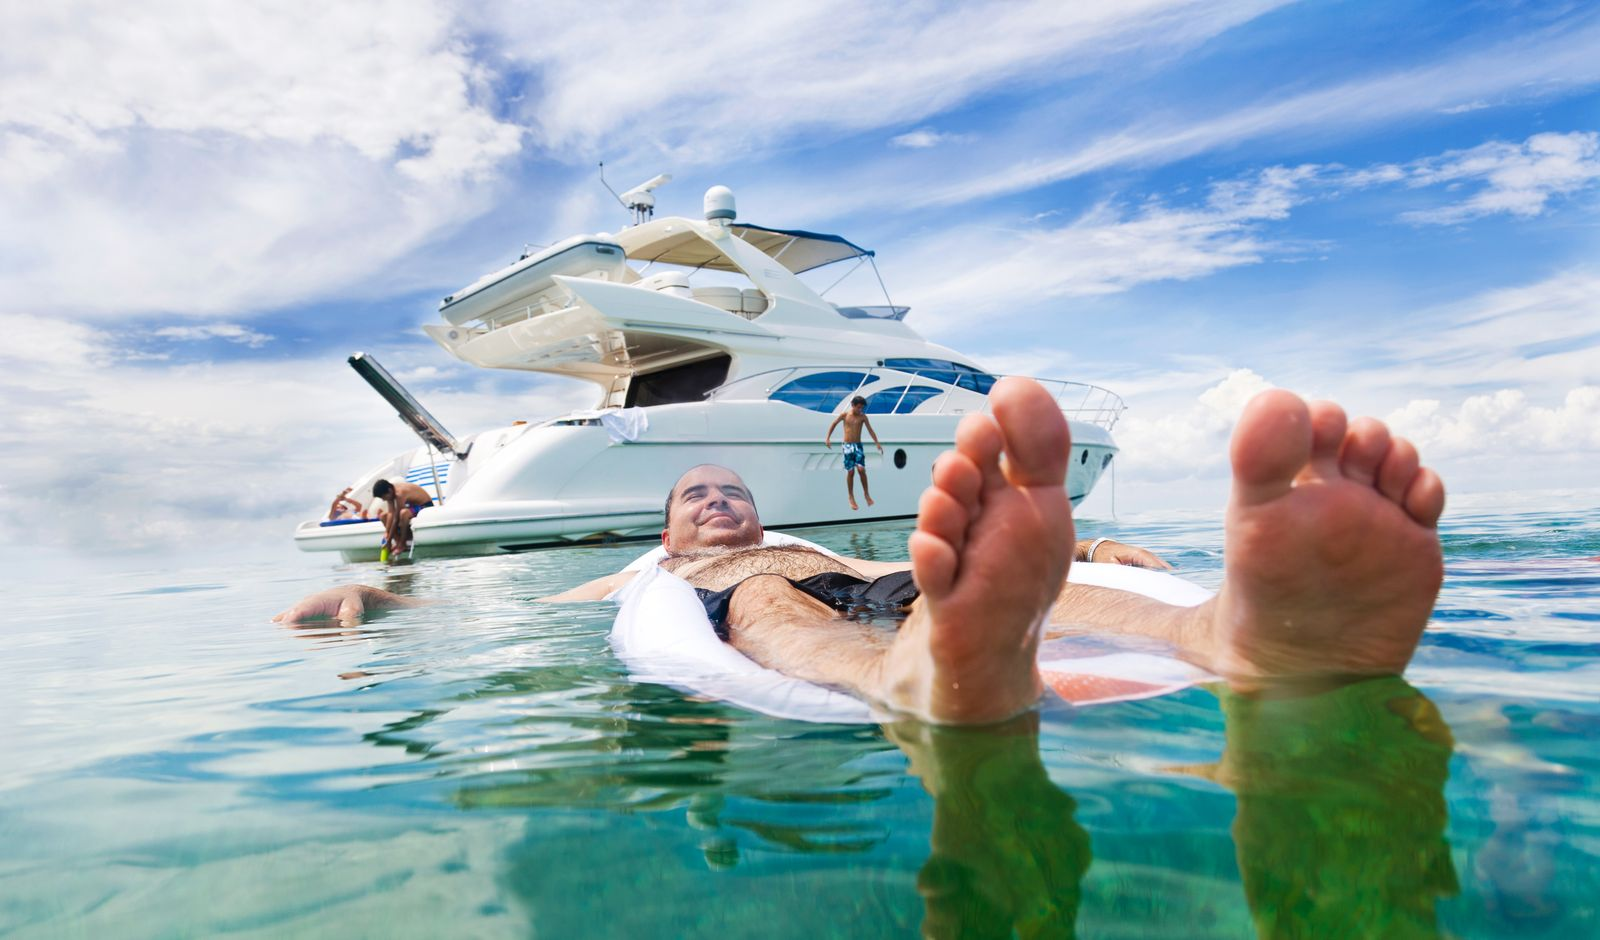 Man floating on air bed with boat in background